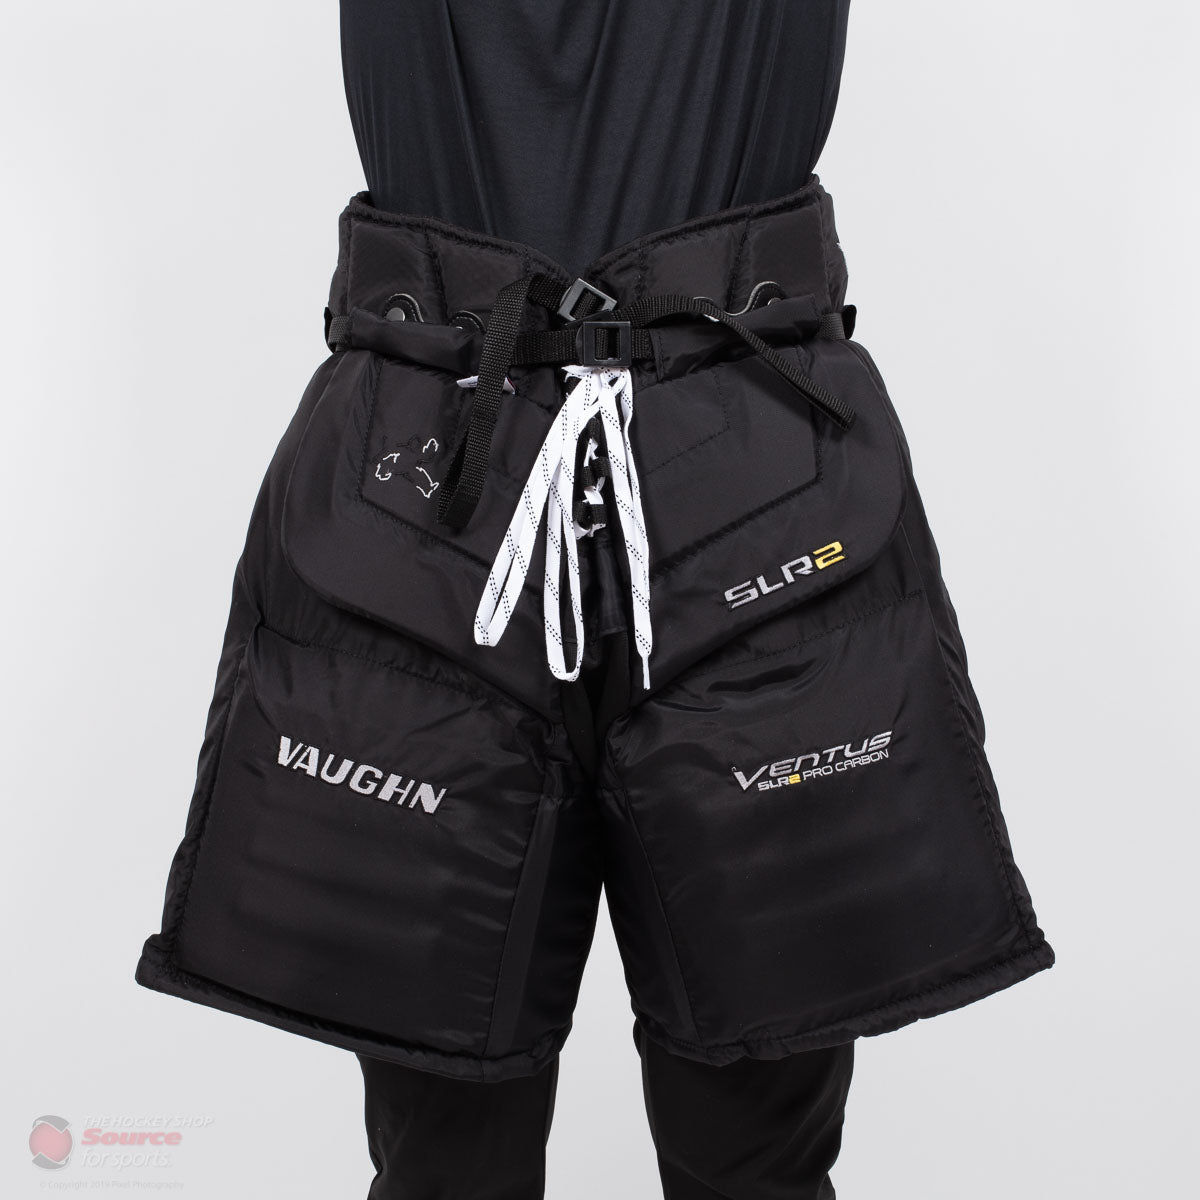 Vaughn Ventus SLR2 Pro Carbon Senior Goalie Pants